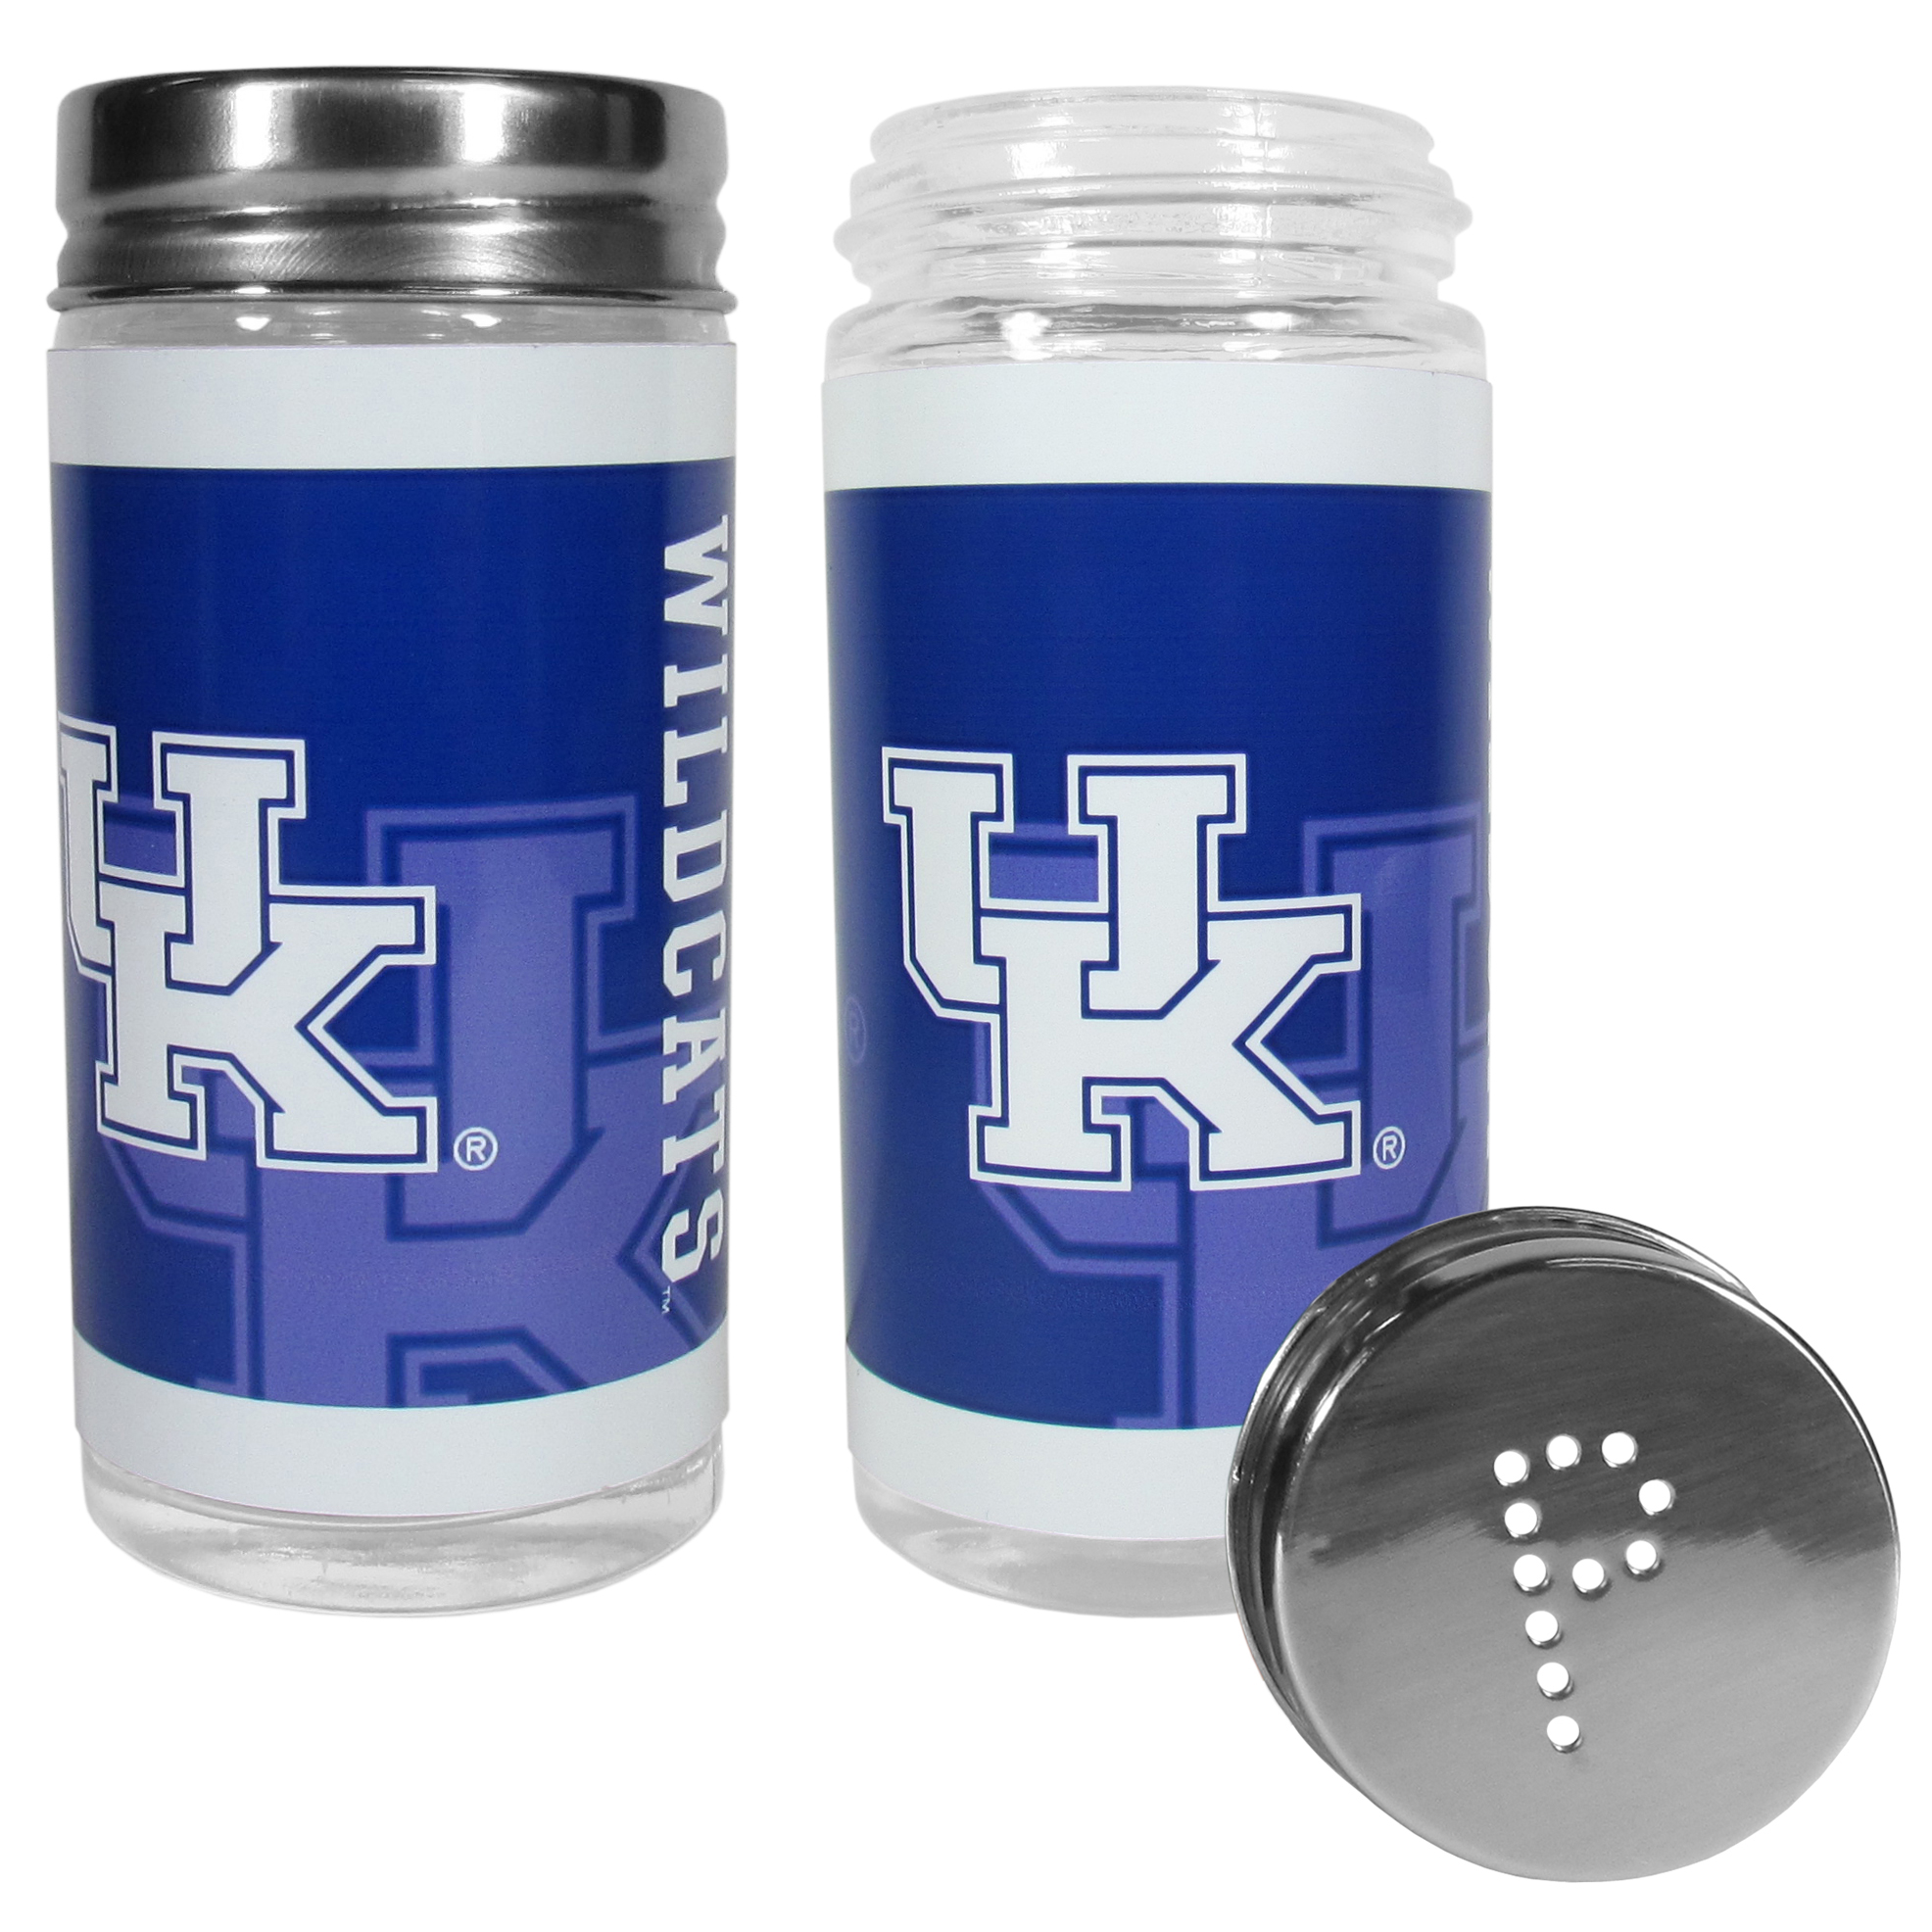 Kentucky Wildcats Tailgater Salt and Pepper Shakers - No tailgate party is complete without your Kentucky Wildcats salt & pepper shakers featuring bright team graphics. The glass shakers are 3.75 inches tall and the screw top lids have holes that spell out P and S. These team shakers are a great grill accessory whether you are barbecuing on the patio, picnicing or having a game day party.